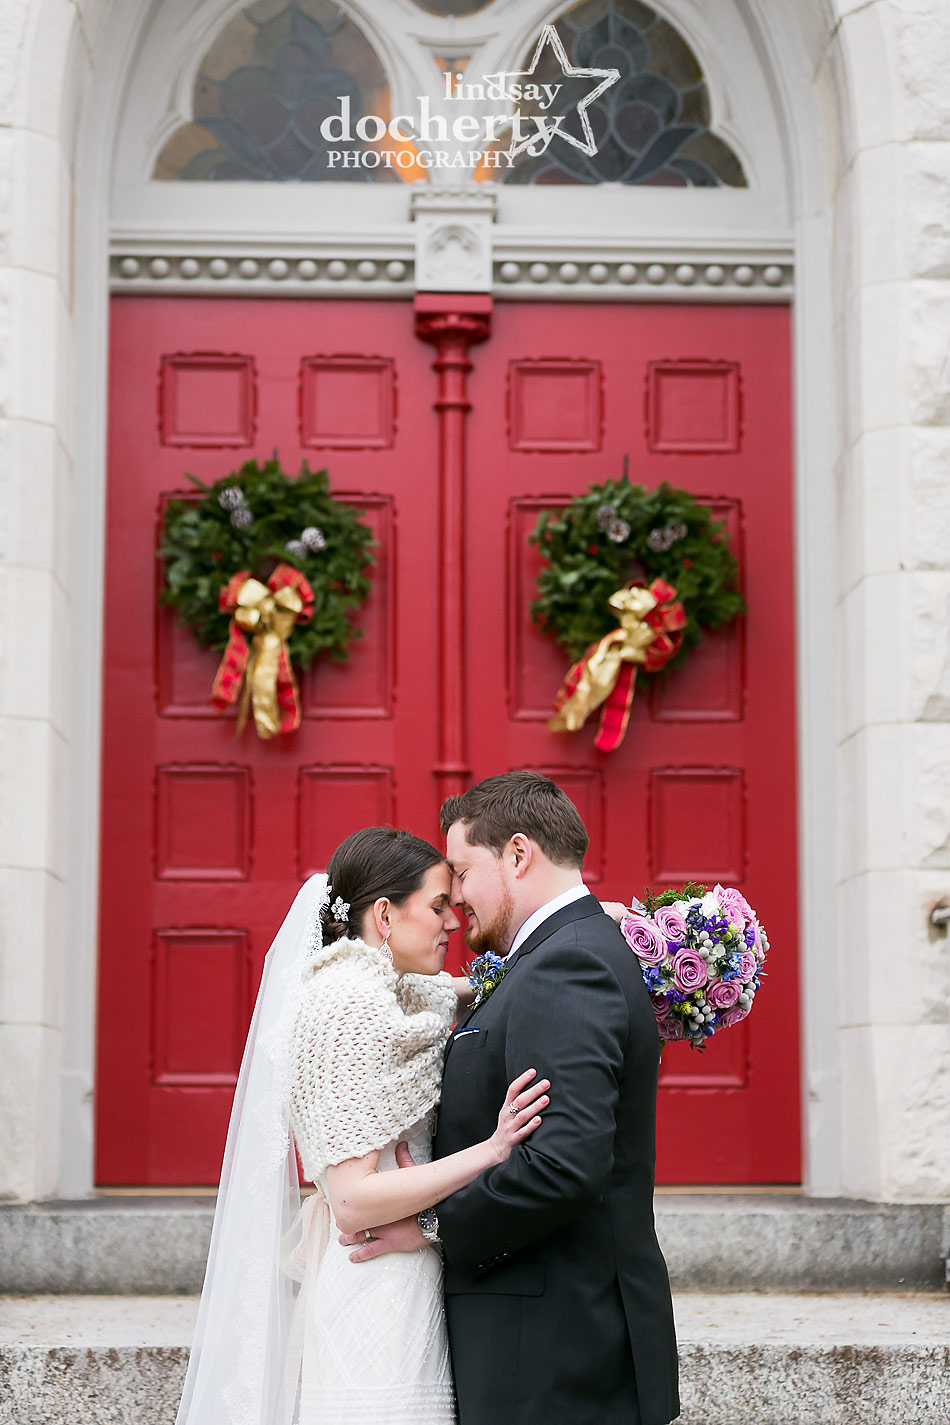 winter-wedding-with-bride-and-groom-in-front-of-red-church-doors